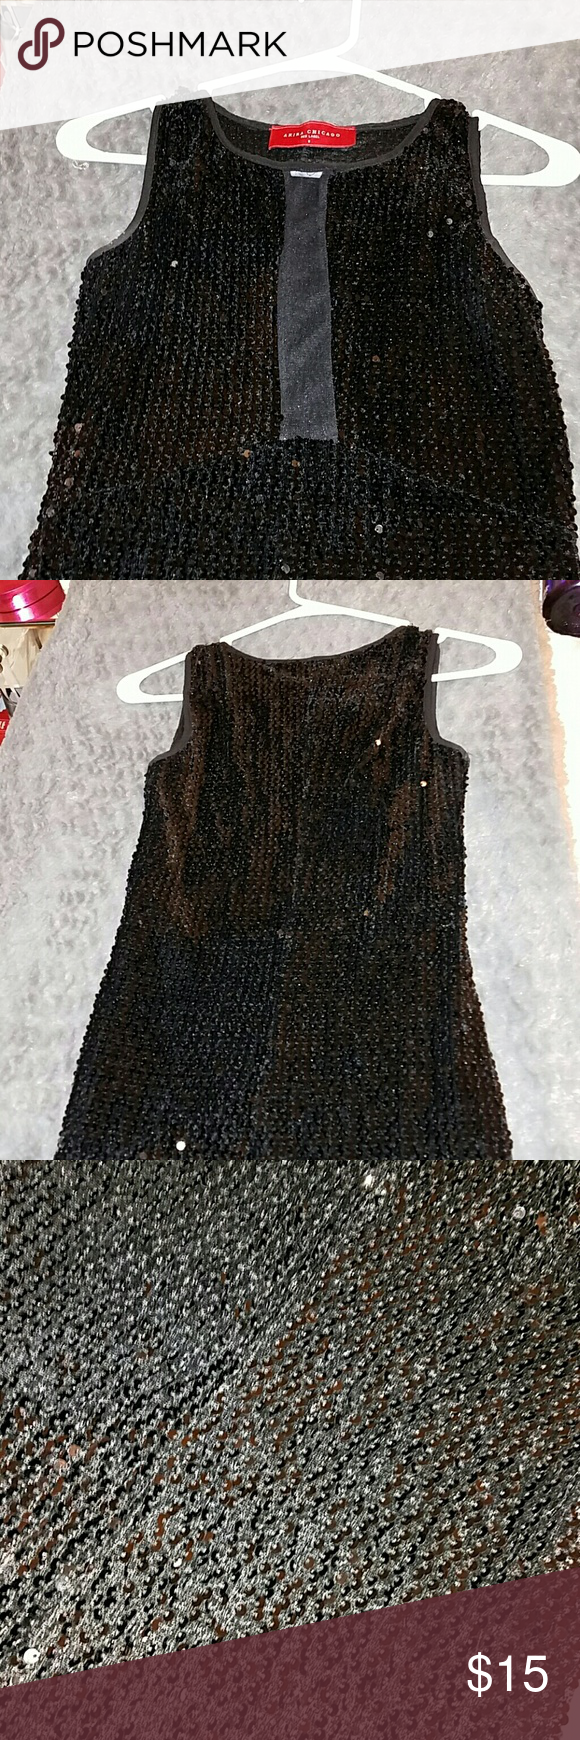 Black sequin dress. All sequin dress. Front strip in front is a see through material. Mini dress. Perfect for that sexy little black dress! AKIRA Dresses Mini